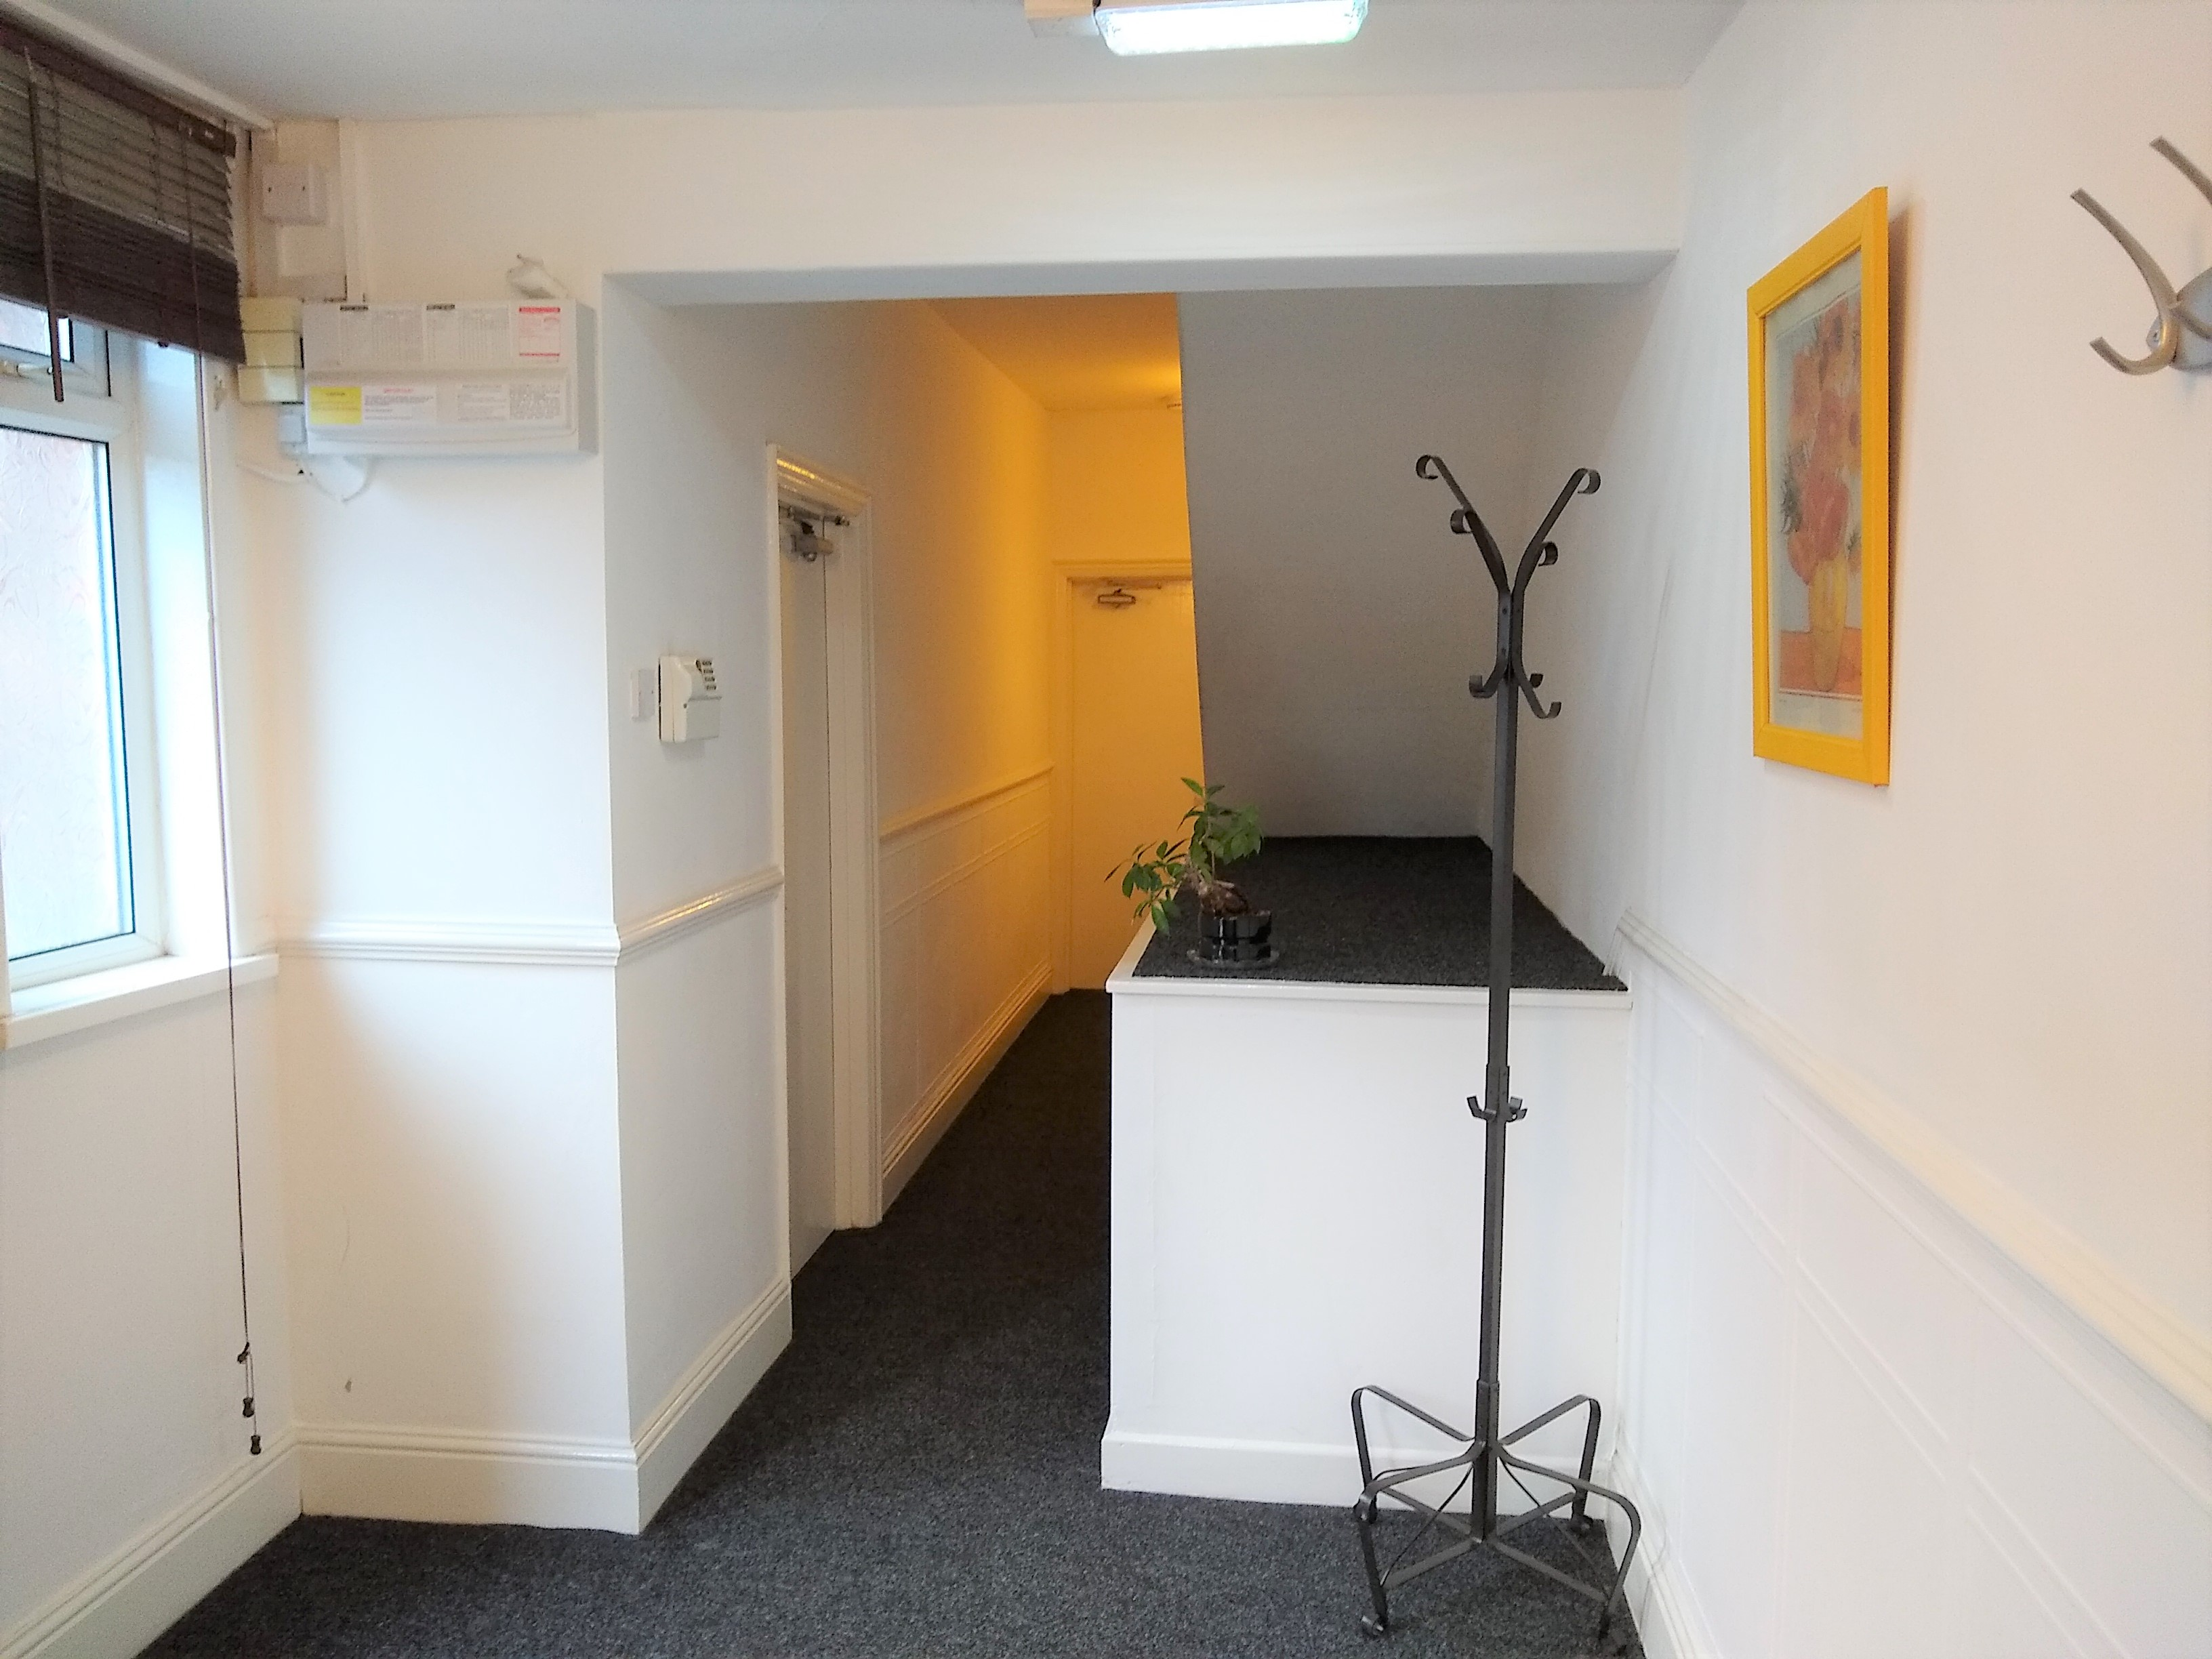 Longman Jones Student Accommodation Available academic year 21/22! Beverley Road (Ref: 1397)